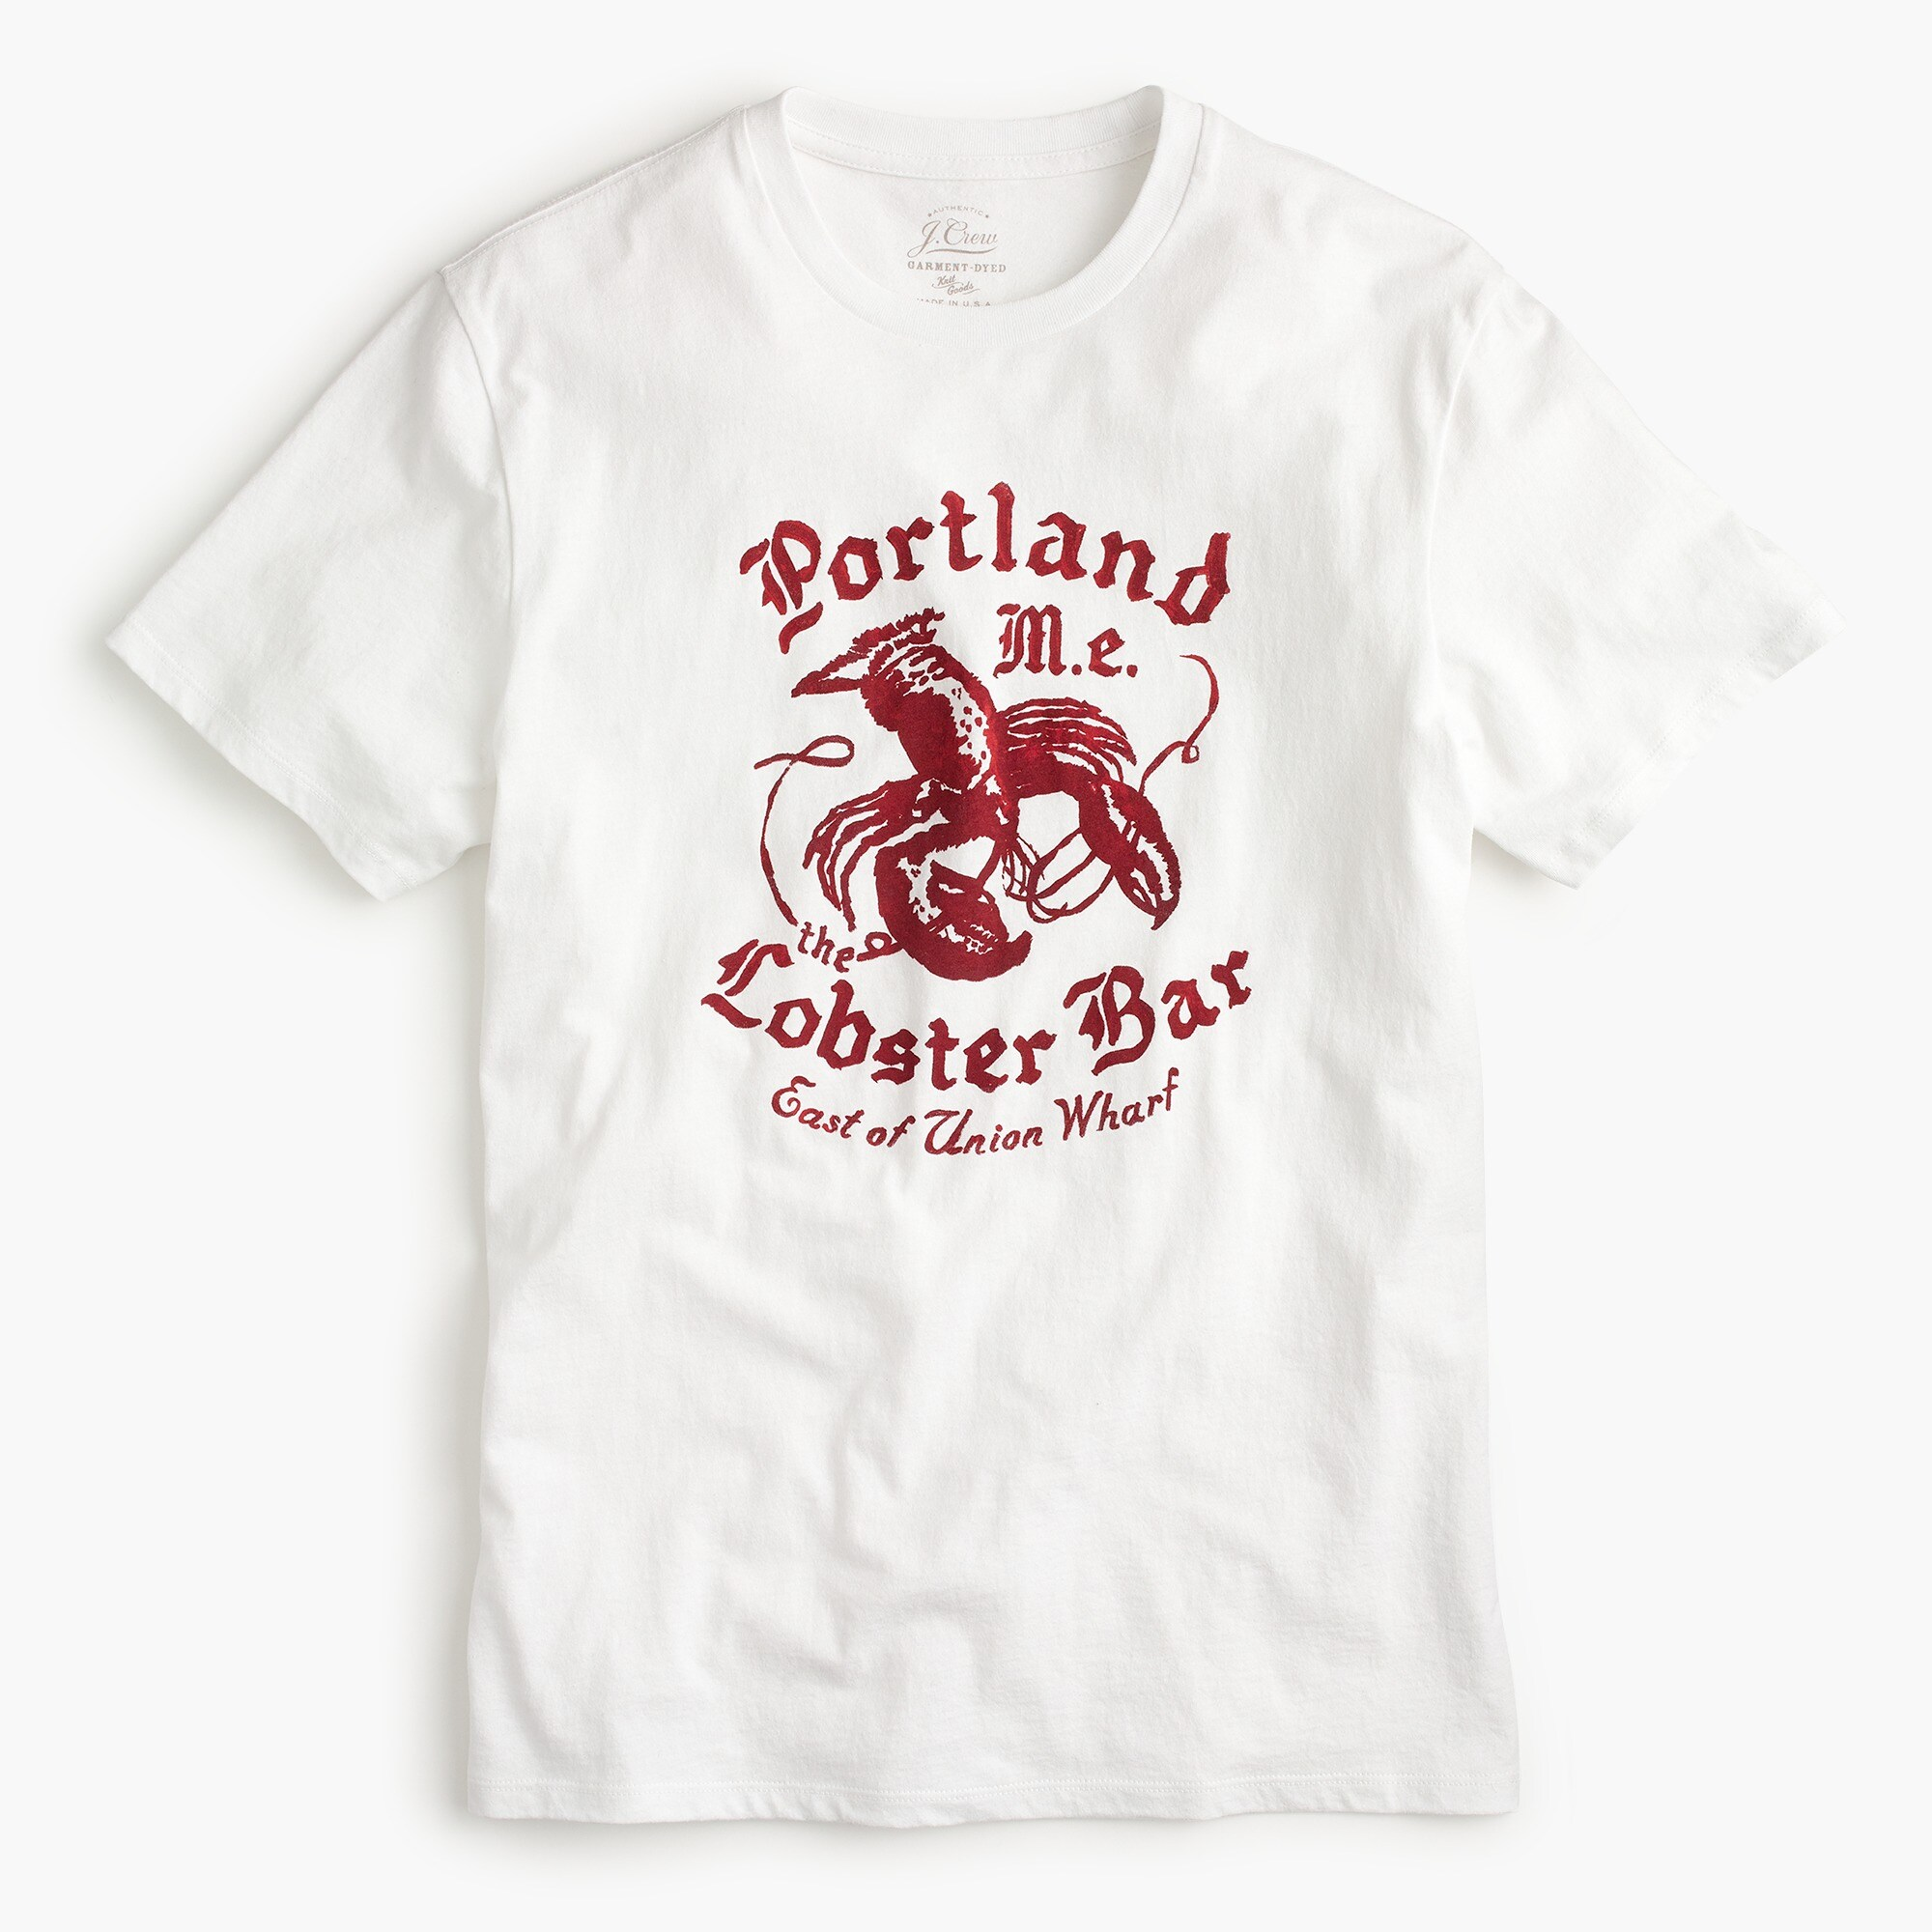 Image 2 for Portland Lobster Bar graphic T-Shirt